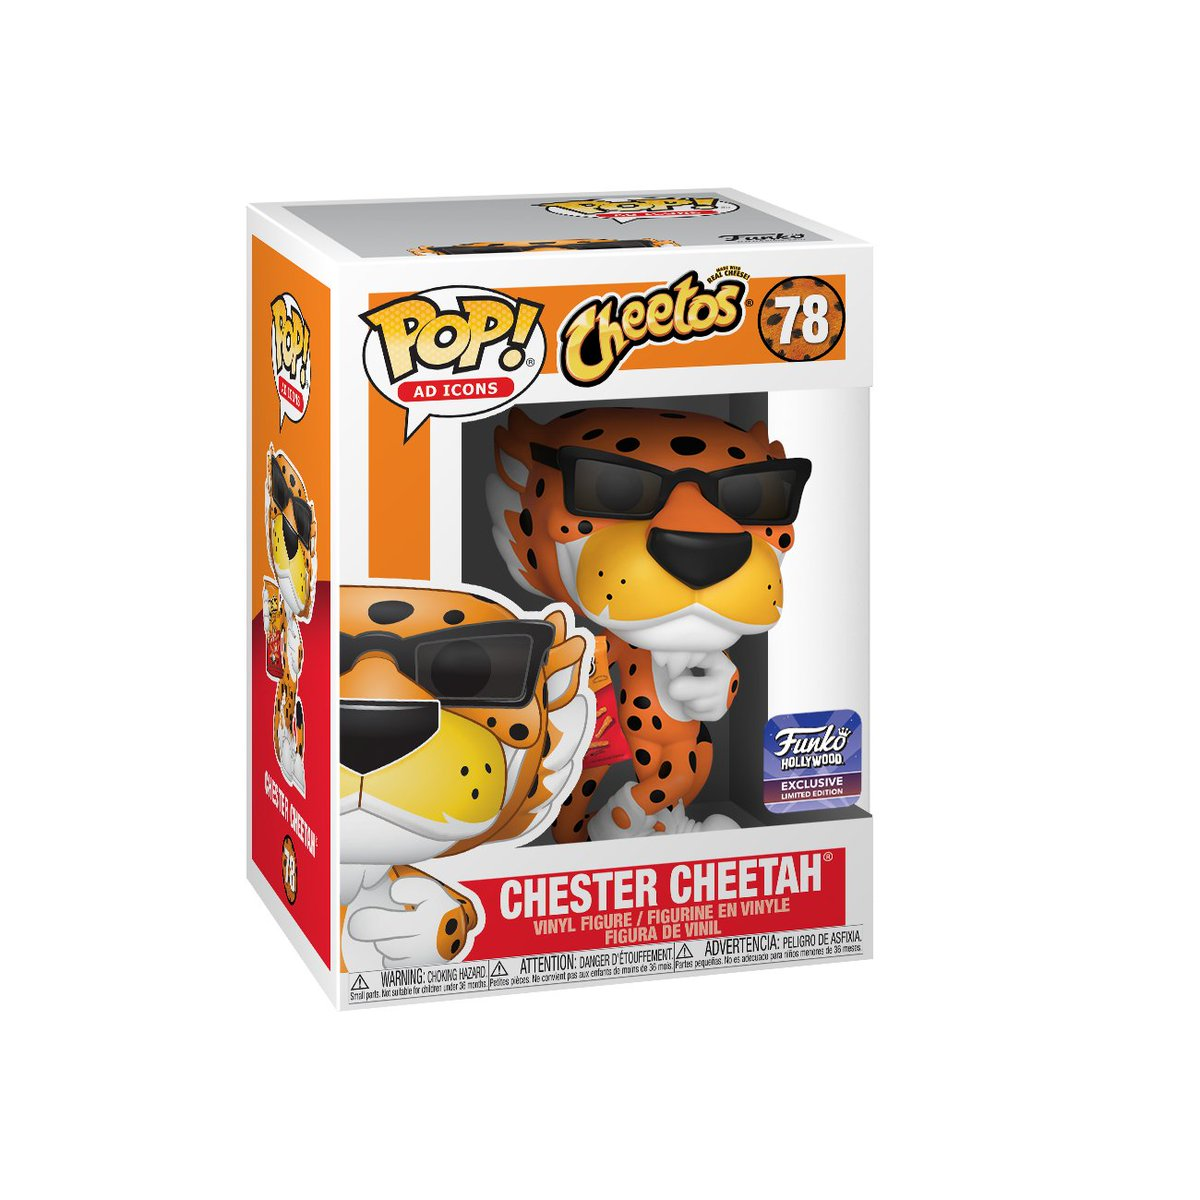 RT & follow @OriginalFunko for a chance to win a Funko Hollywood exclusive @ChesterCheetah Pop!  #Funko #Pop #FunkoHollywood #Giveaway #Exclusive